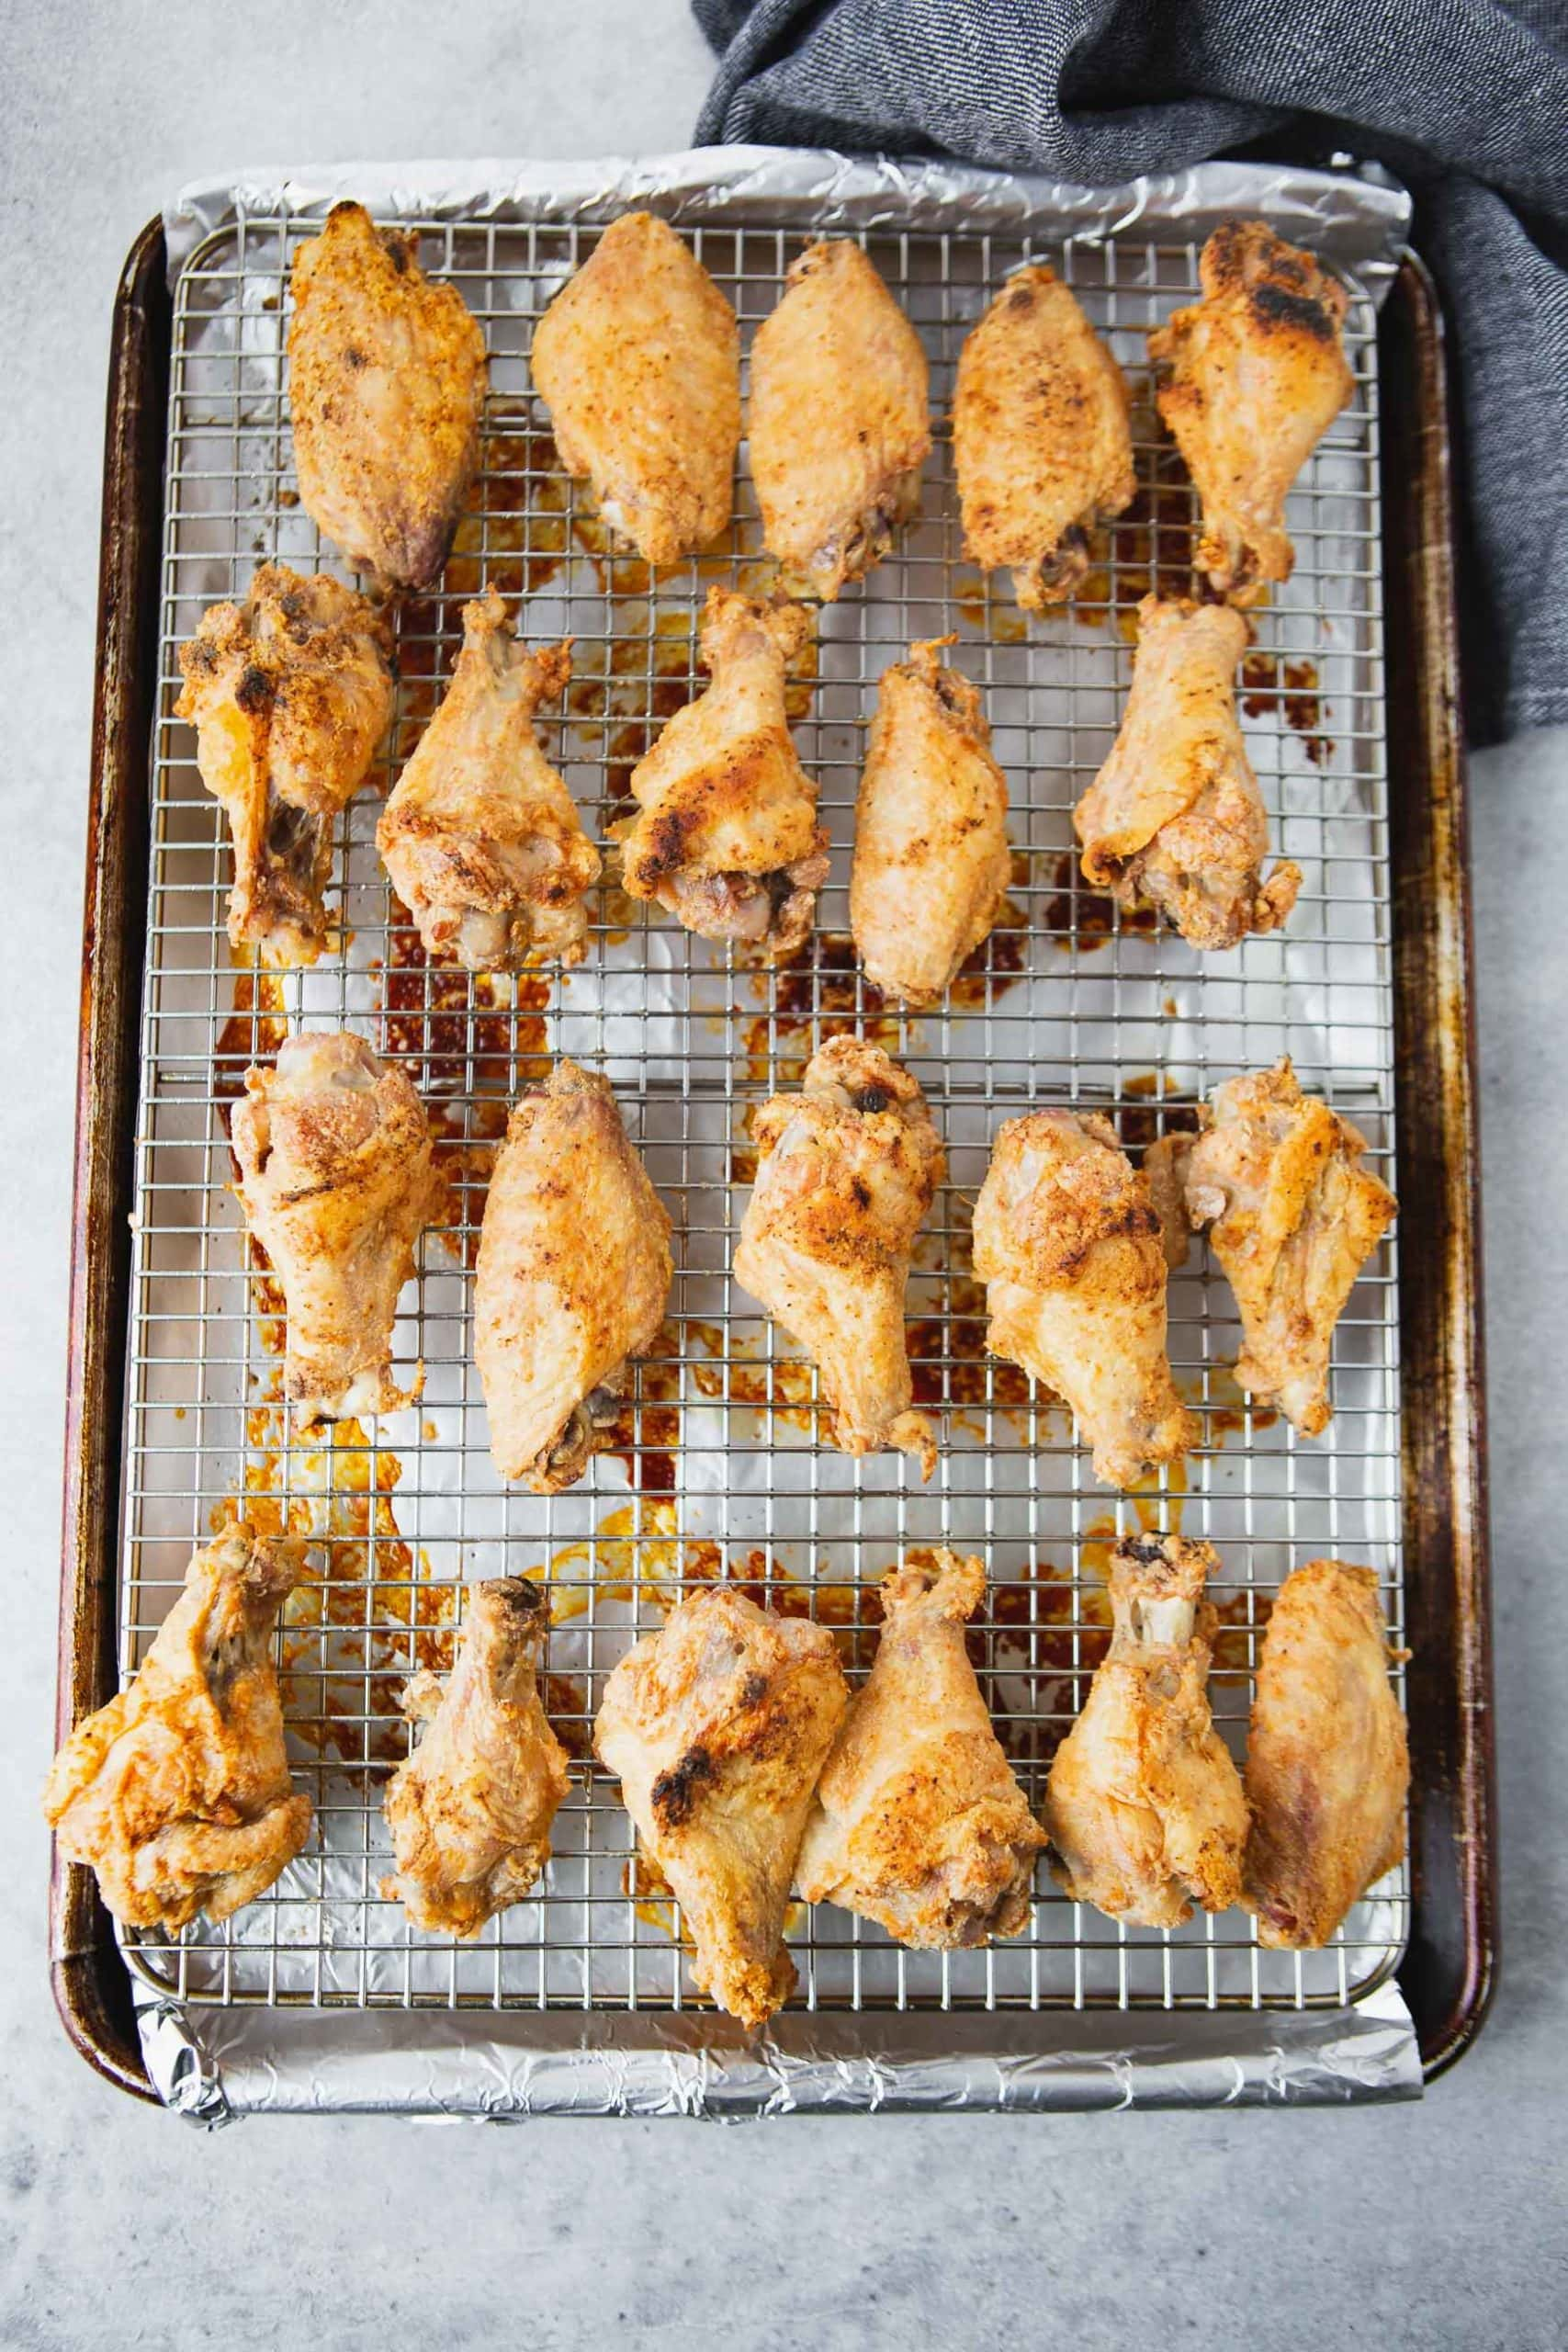 a photo of golden baked chicken wings on a wire rack in a baking sheet.